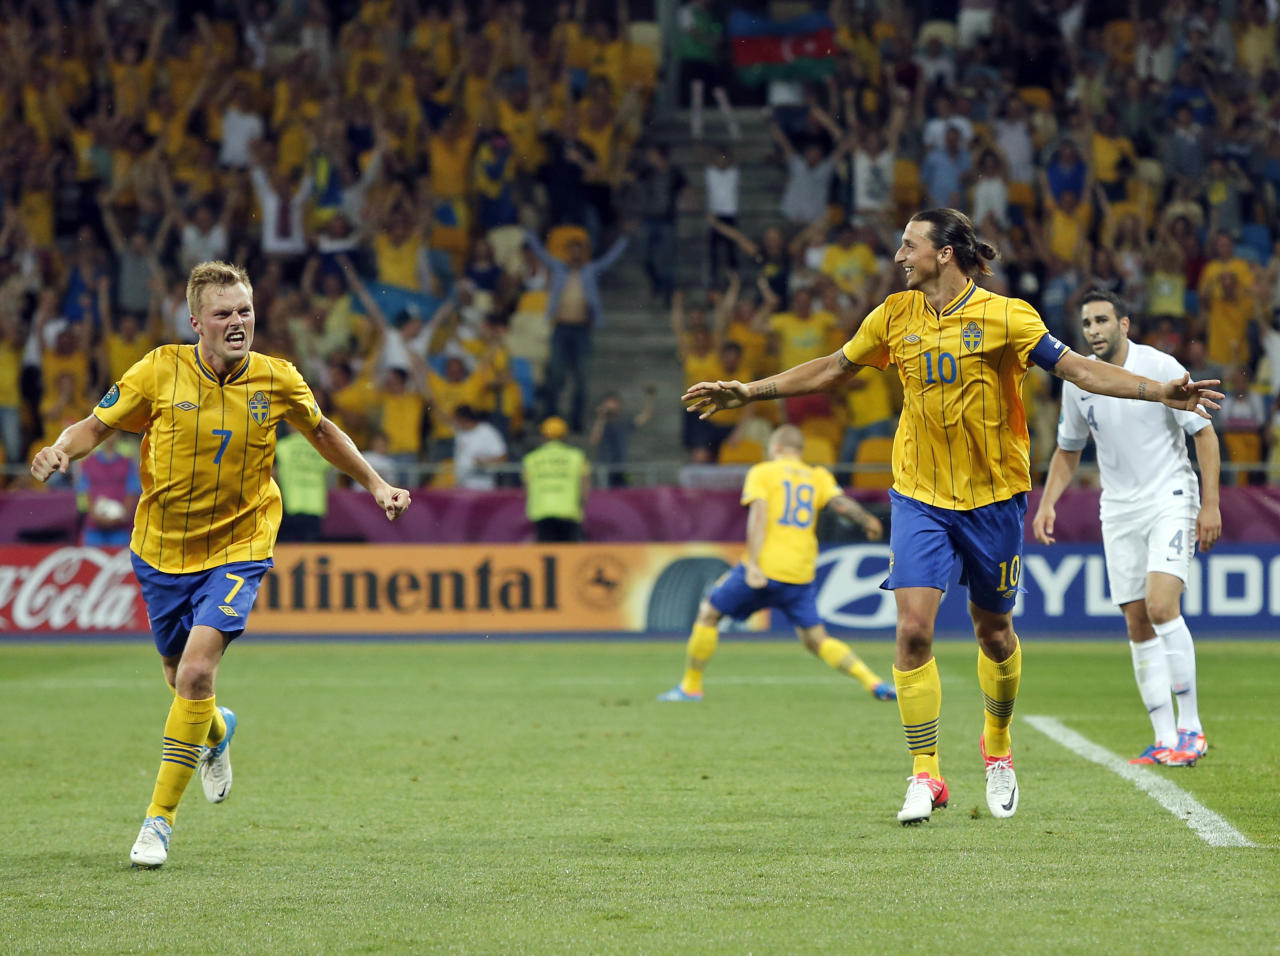 Sweden's Sebastian Larsson, left, and Zlatan Ibrahimovic celebrate the second goal during the Euro 2012 soccer championship Group D match between Sweden and France in Kiev, Ukraine, Tuesday, June 19, 2012. (AP Photo/Sergei Grits)